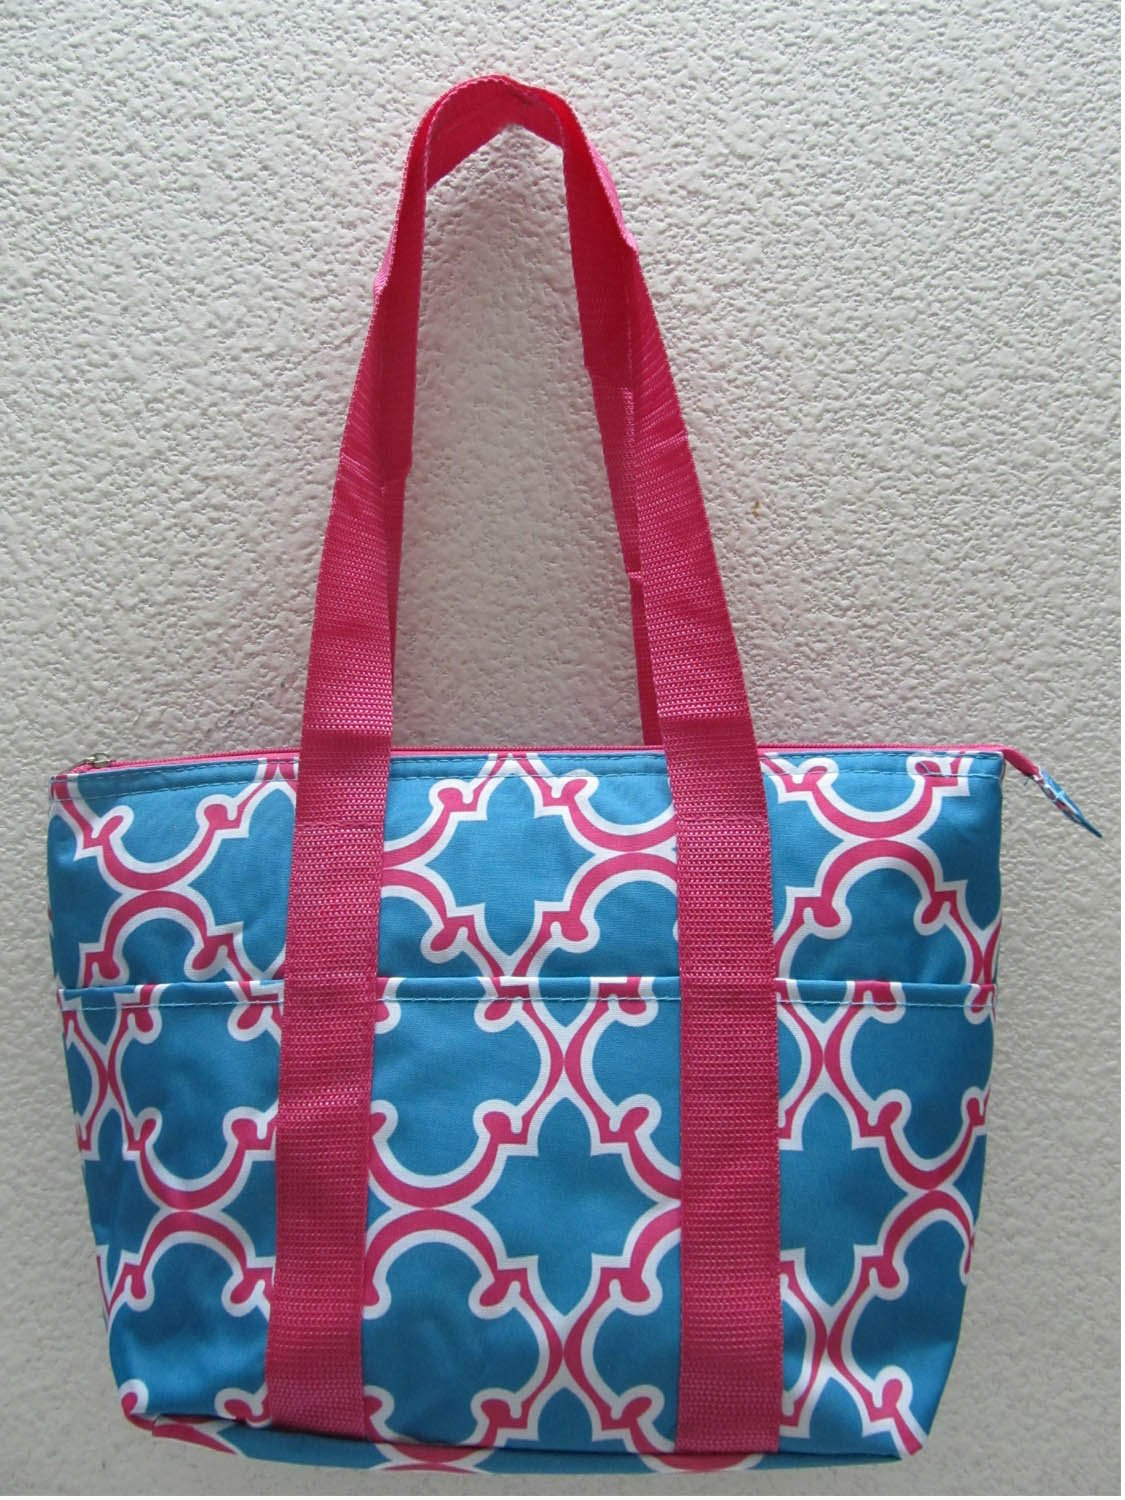 Good Bag Insulated Lunch Bag Portable Carry Storage Lunch Tote Bag - Blue Quatrefoil